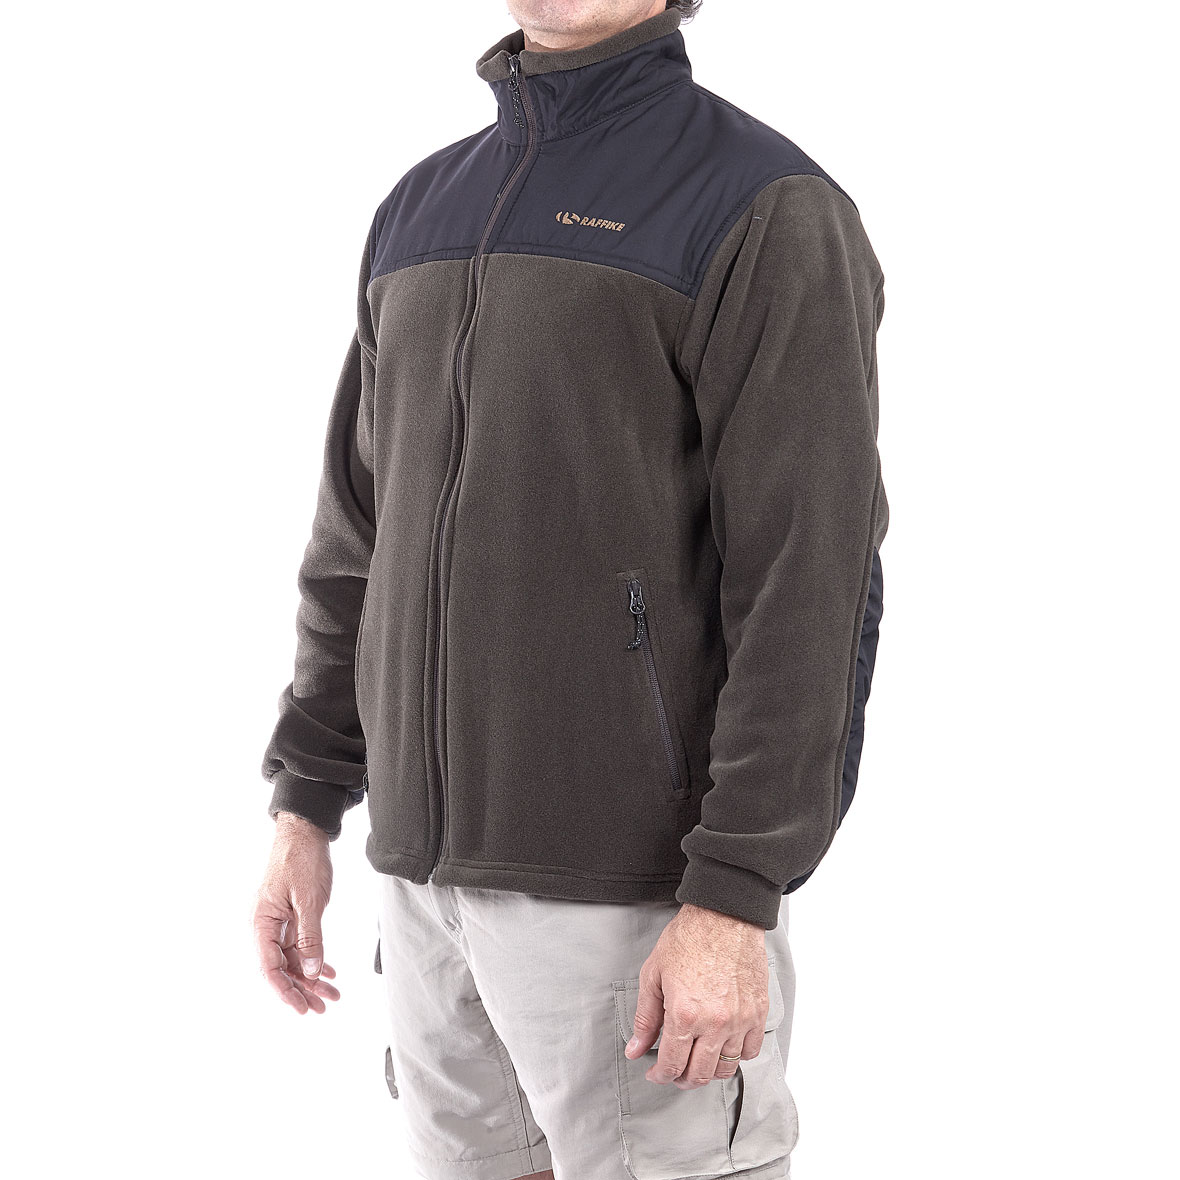 MG 8521 5FL50121G70M Campera Lagoon Chocolate - Campera Lagoon H Polartec Thermal Pro